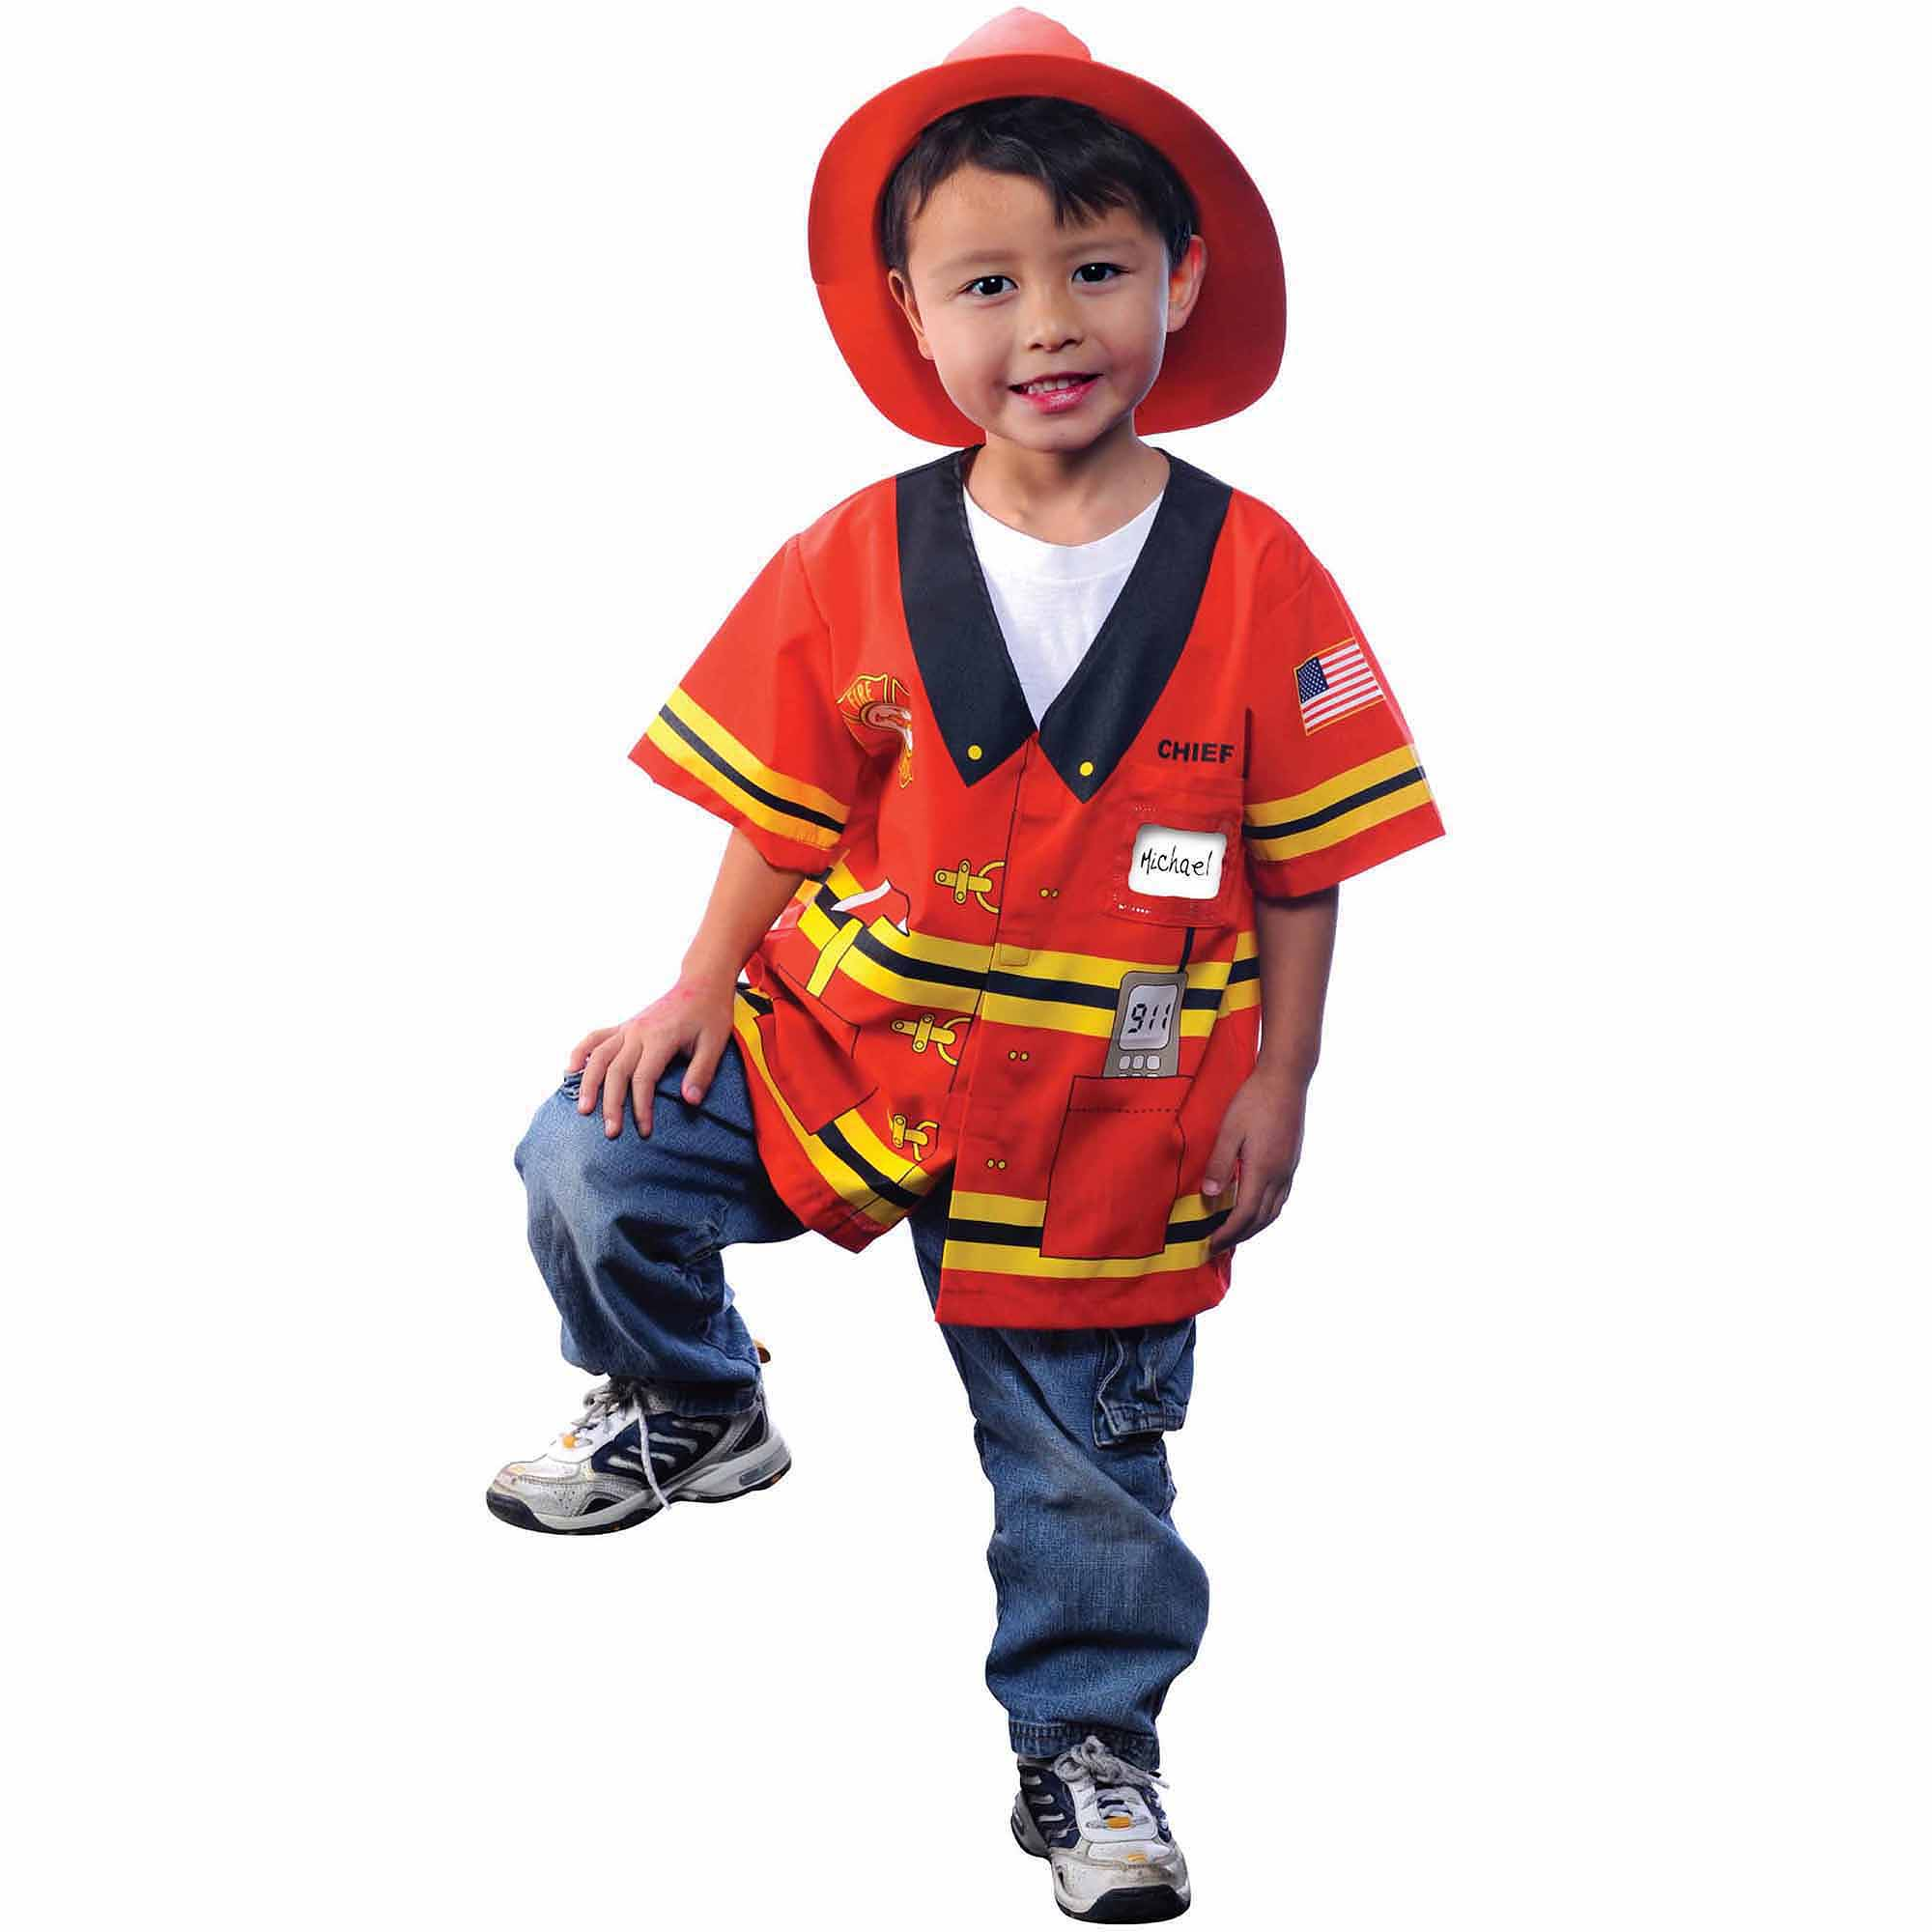 My First Career Gear Firefighter Toddler Halloween Costume